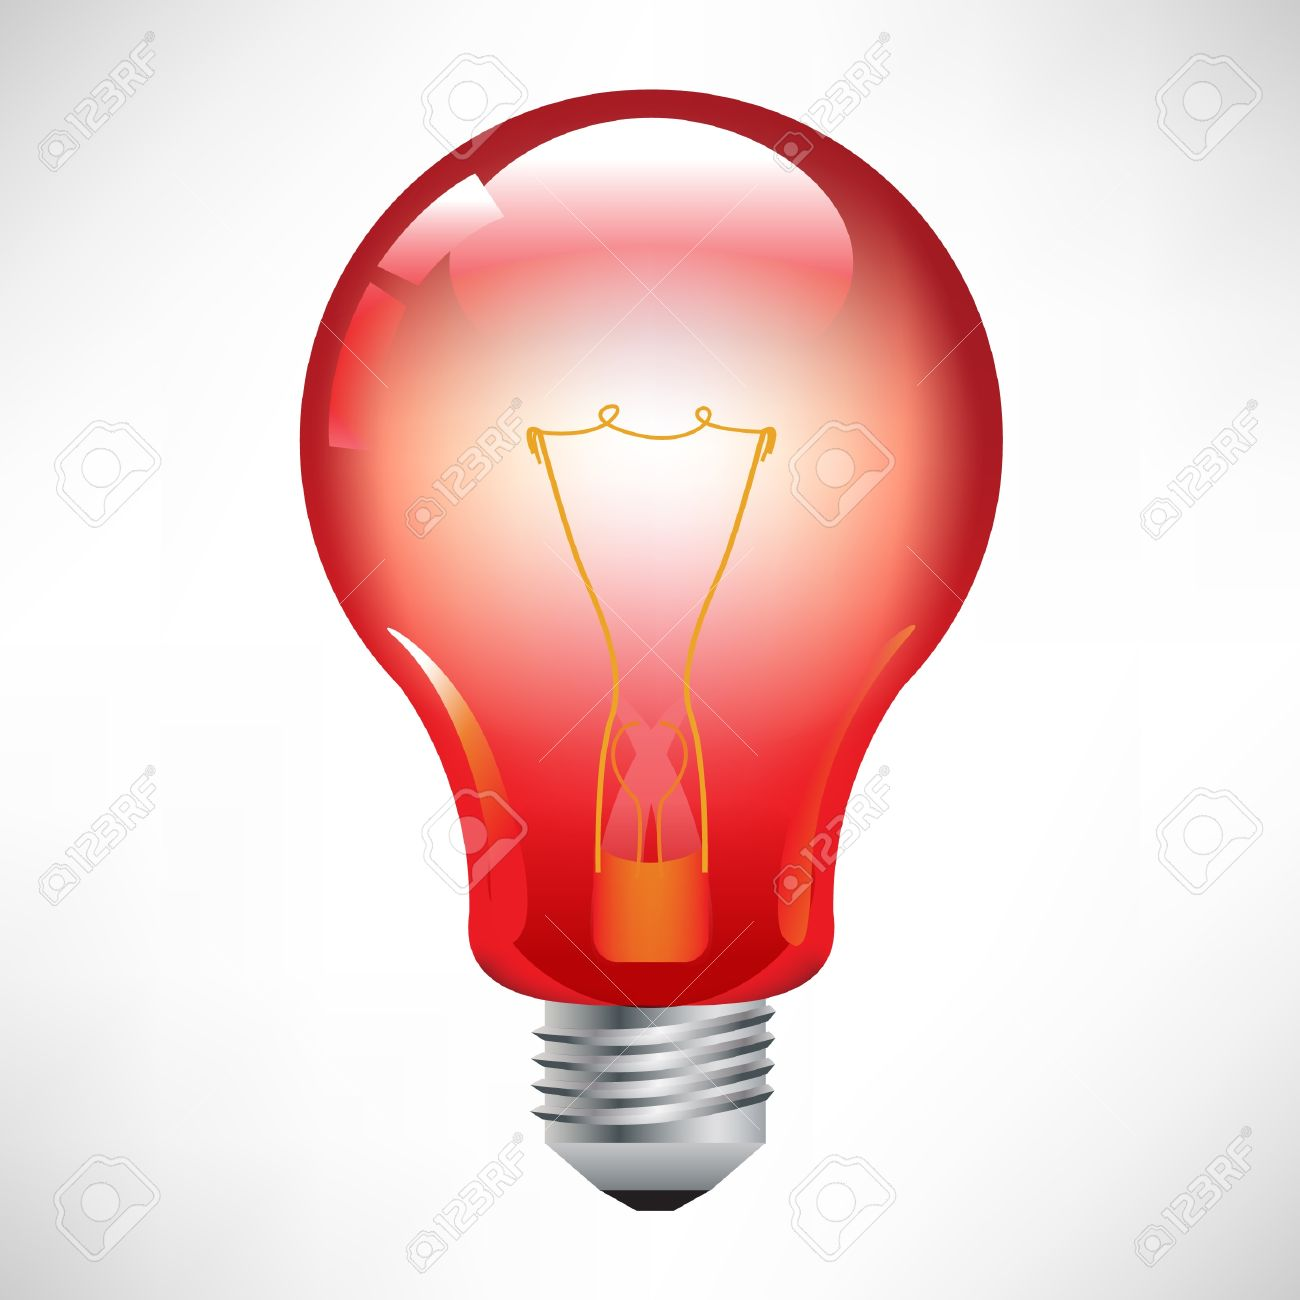 Red Light Bulb Royalty Free Cliparts, Vectors, And Stock.